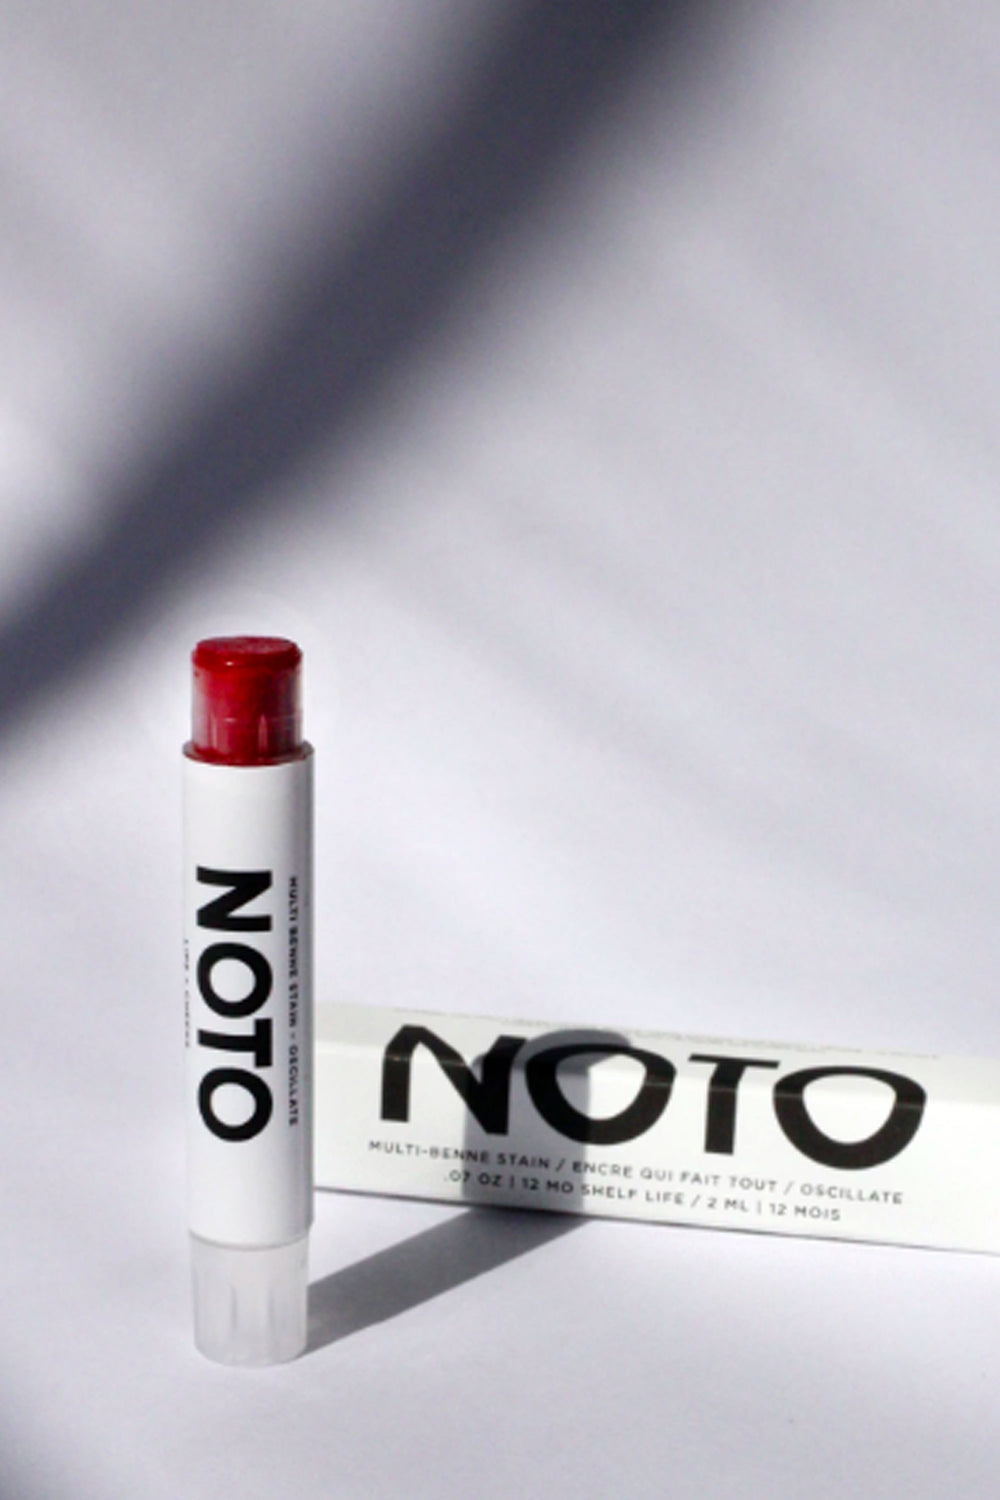 NOTO Oscillate Multi-Benne Stain Stick - Whimsy & Row